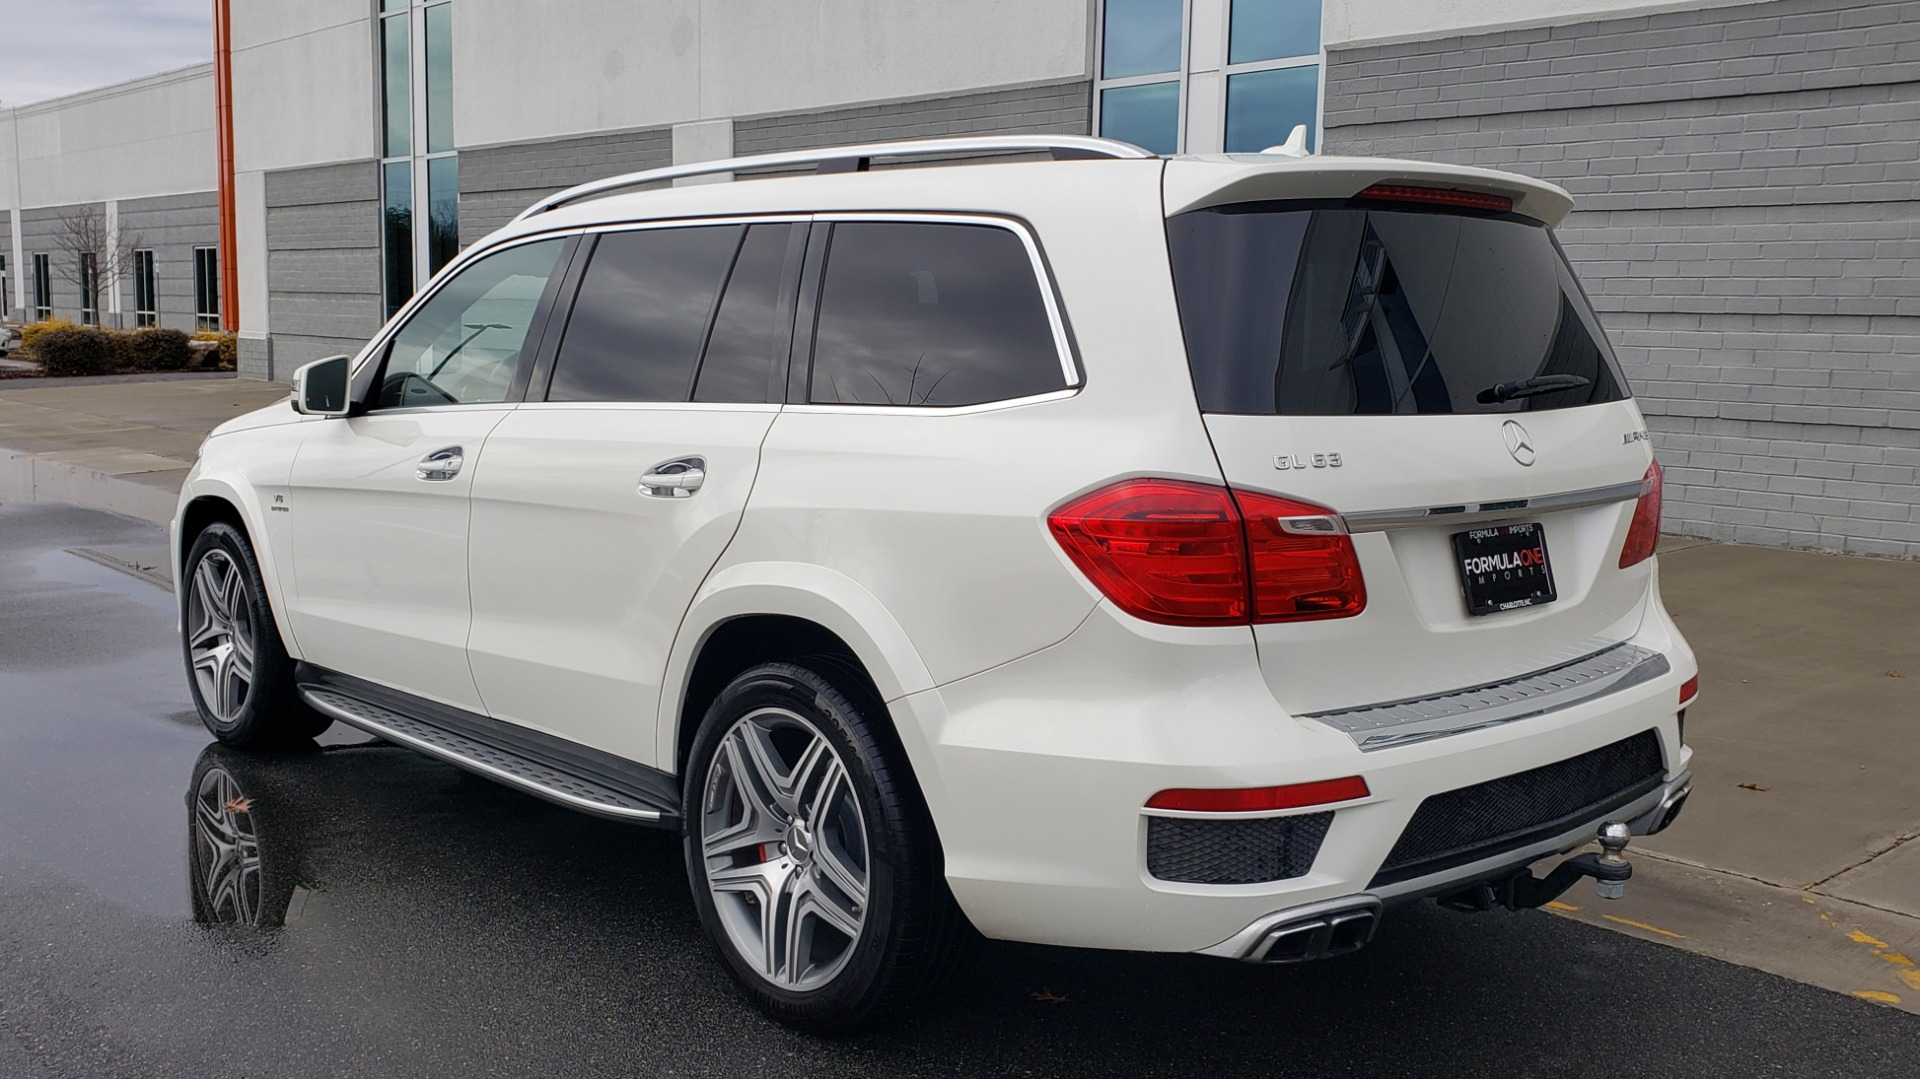 Used 2014 Mercedes-Benz GL-CLASS GL 63 AMG 4MATIC / NIGHT VIEW ASSIST PLUS / BANG & OLUFSEN SND for sale Sold at Formula Imports in Charlotte NC 28227 5